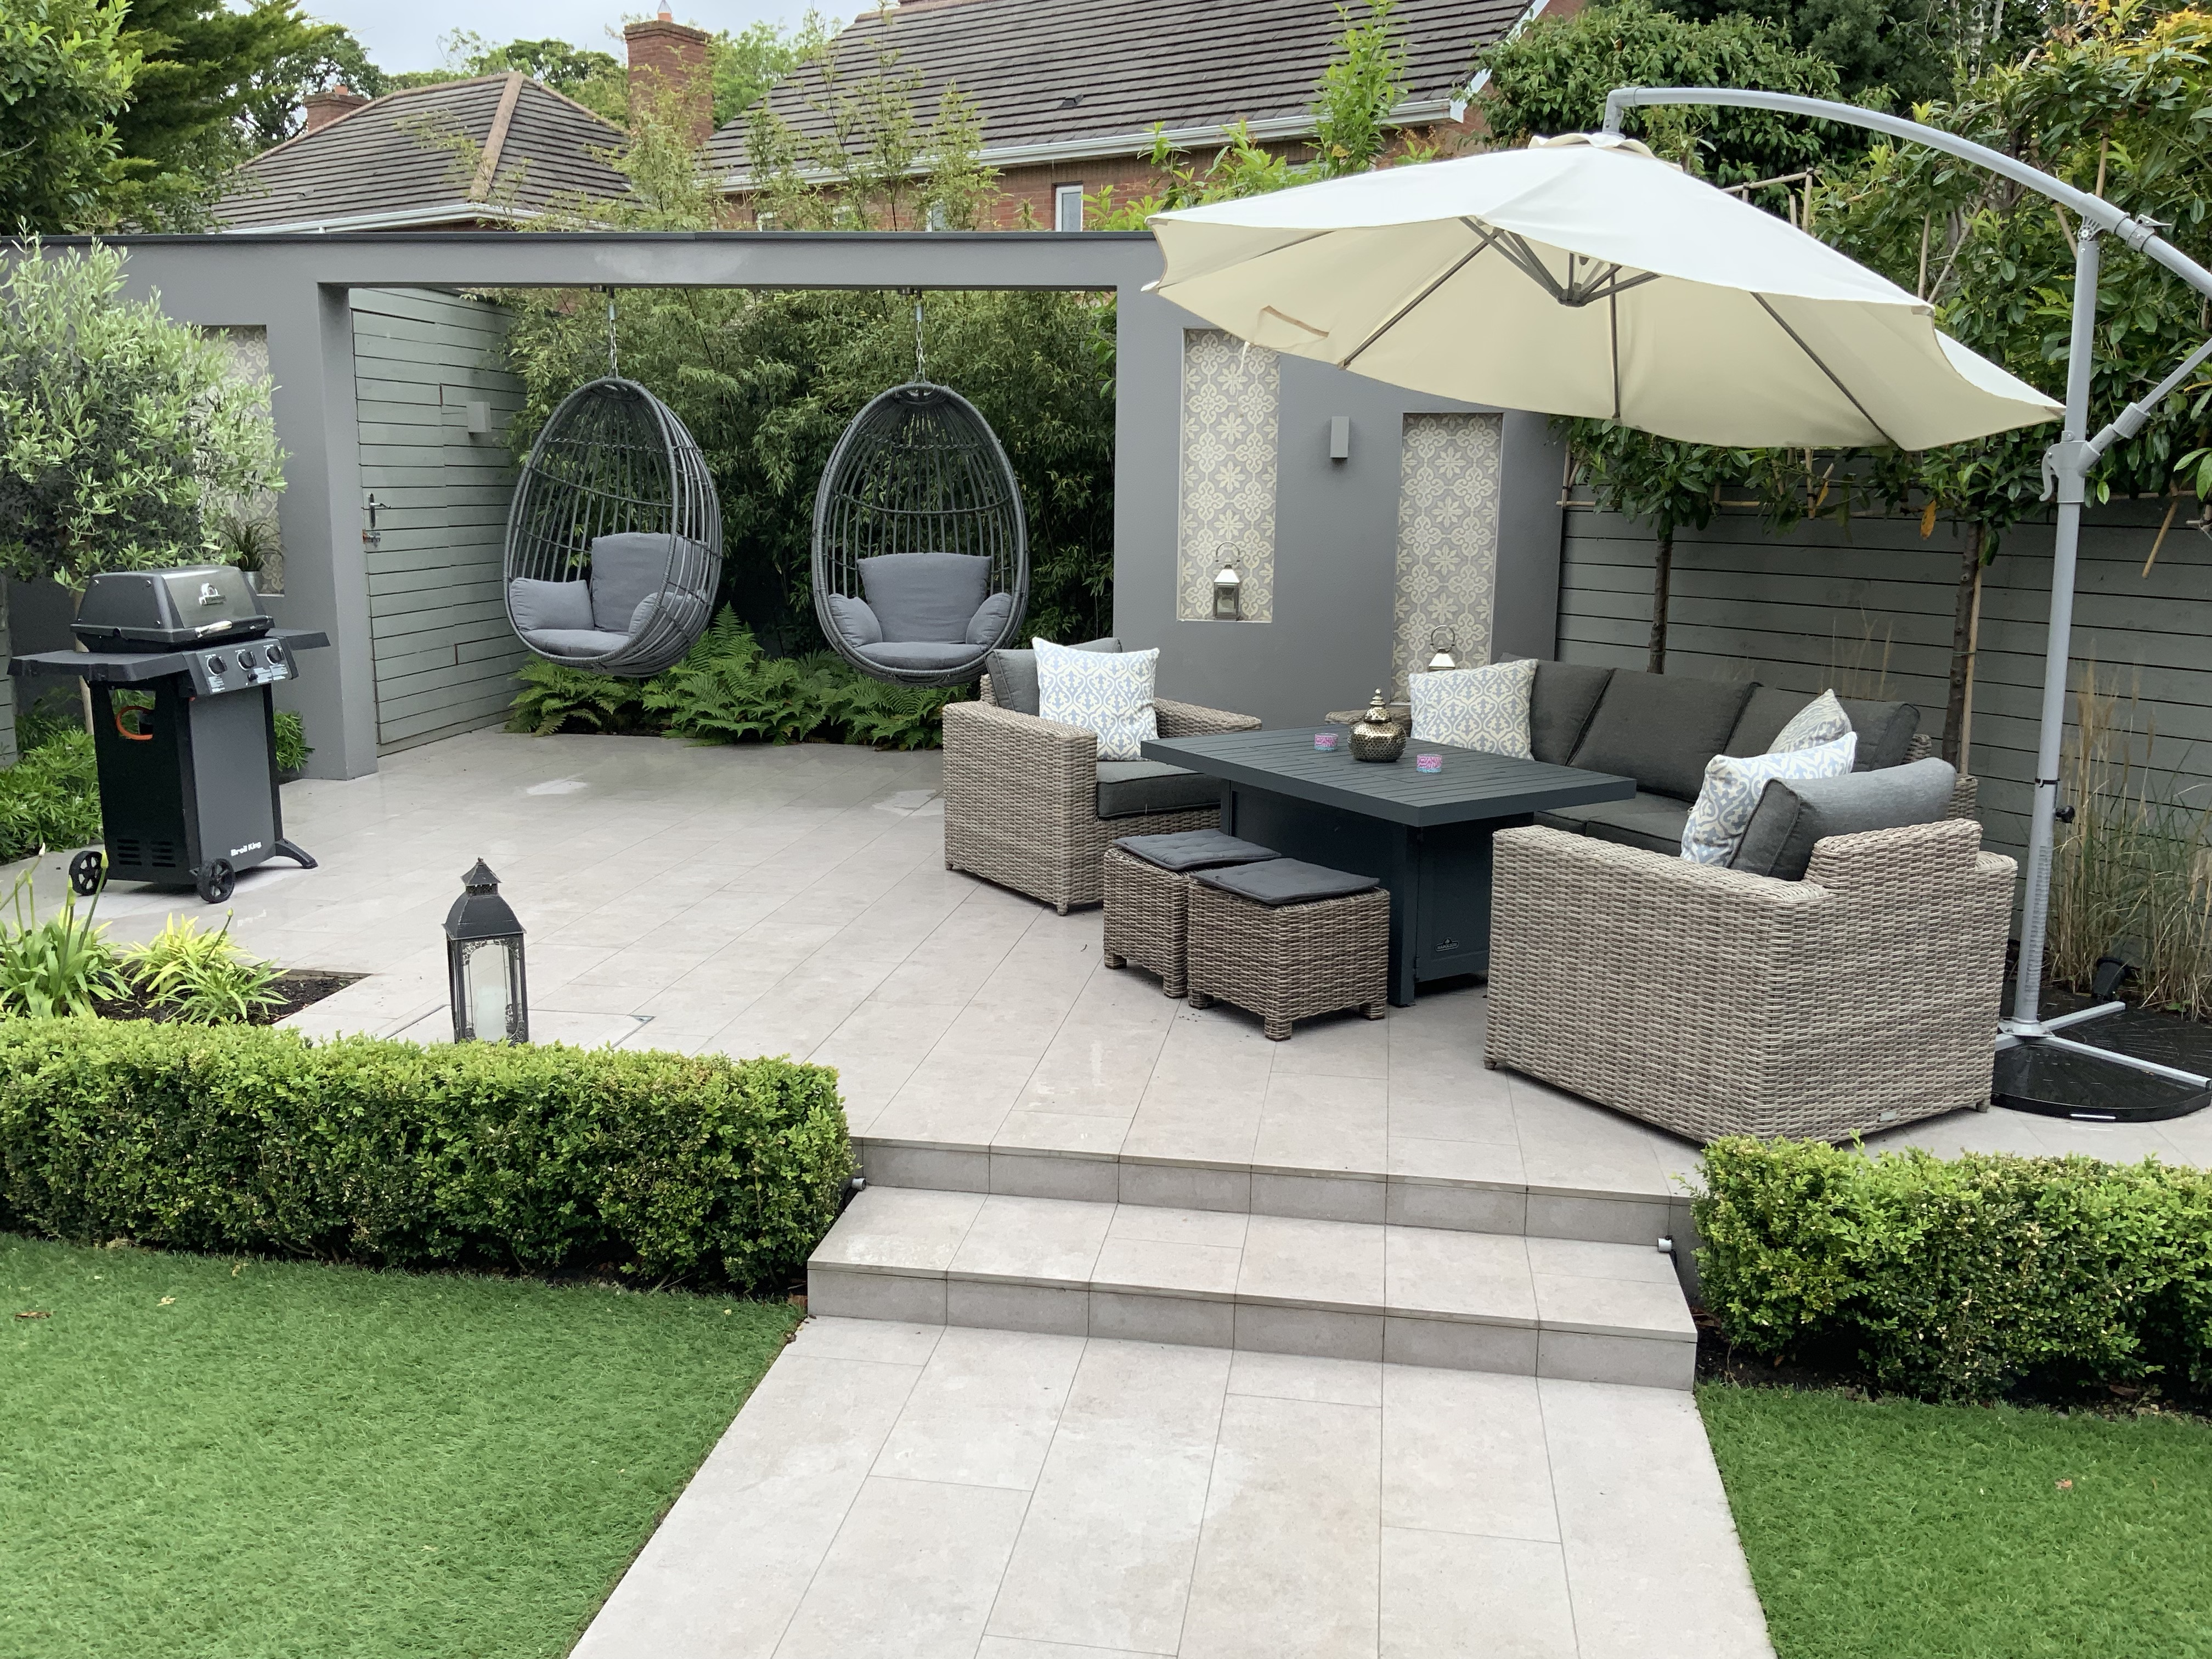 planning a practical garden makeover  we asked the experts